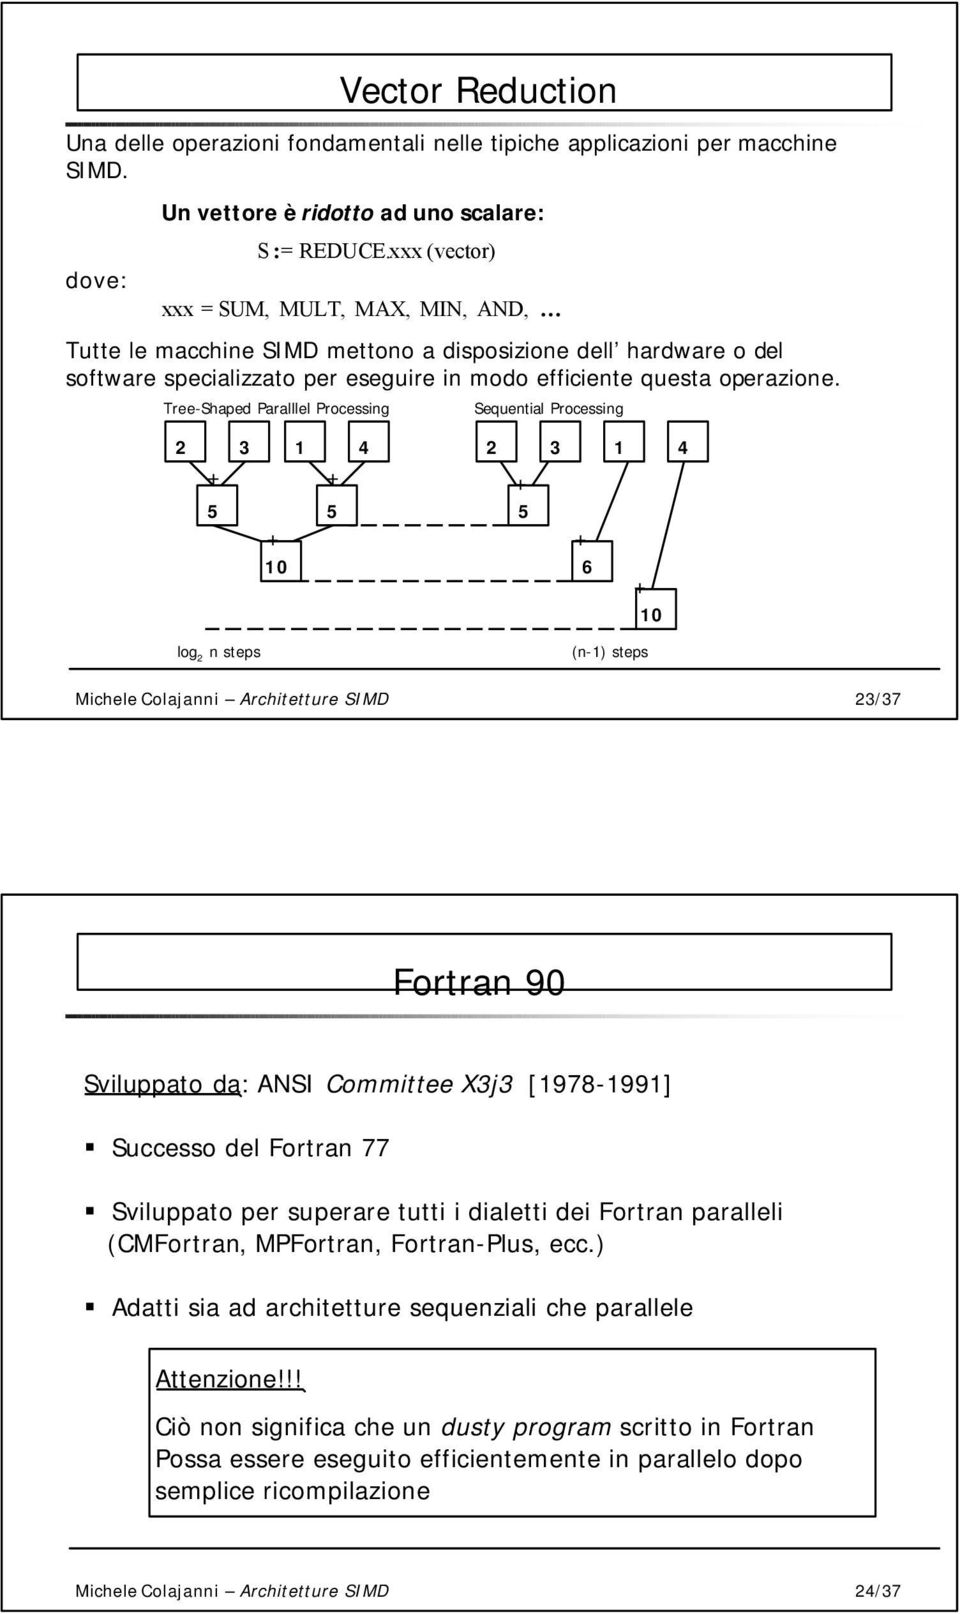 Tree-Shaped Paralllel Processing 1 1 + + + + 1 Sequential Processing + 6 + 1 log n steps (n-1) steps Michele olajanni rchitetture SIMD /7 Fortran 9 Sviluppato da: NSI ommittee j [1978-1991] Successo